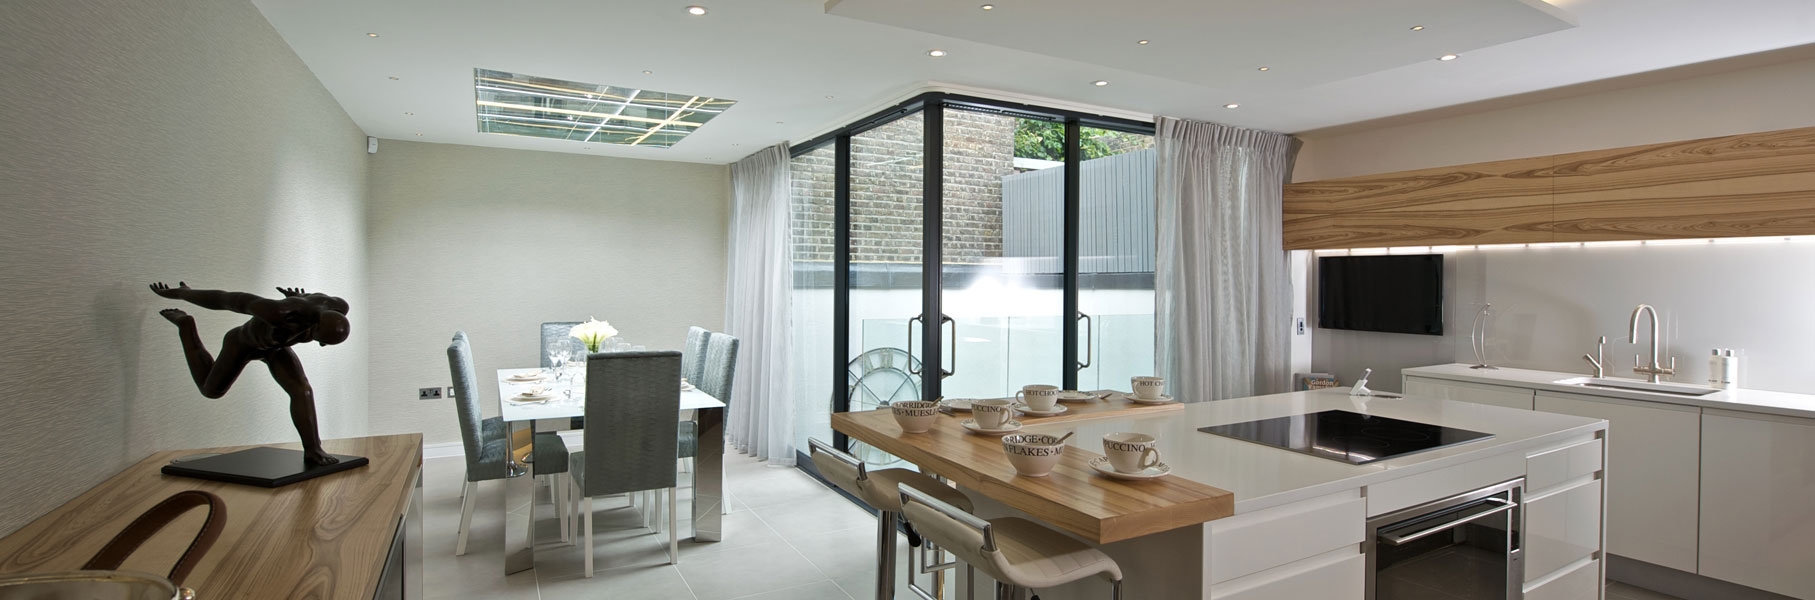 Elvaston Mews, London. Interior design image by Elizabeth Designs Limited